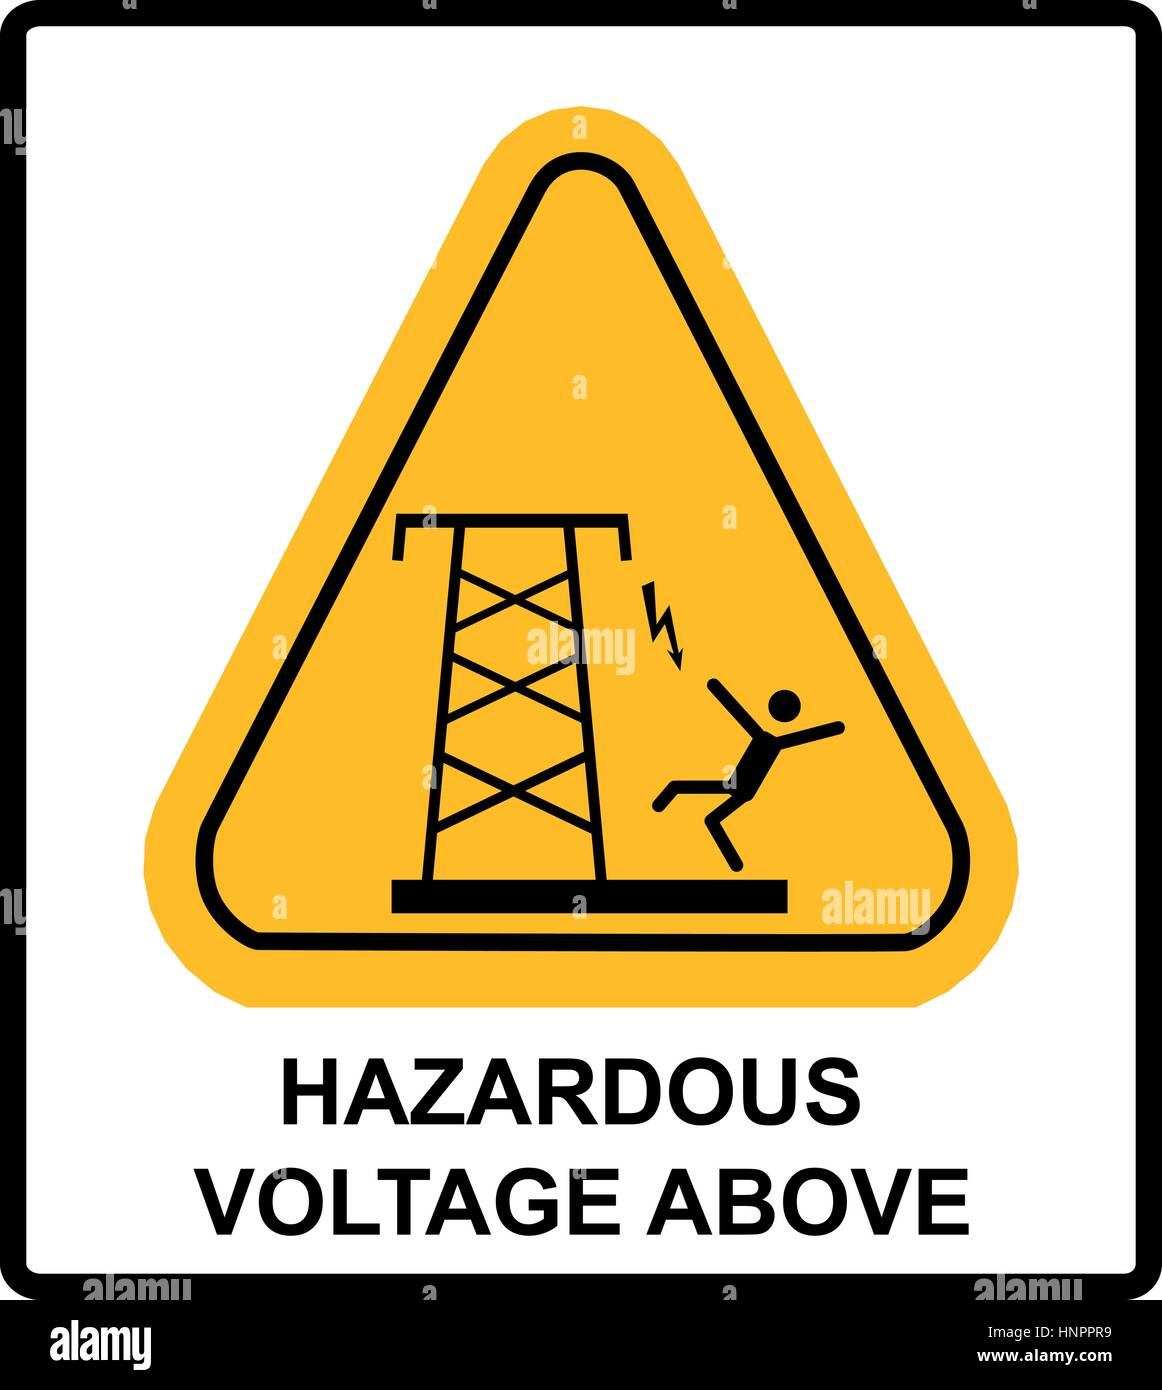 Hazardous Voltage Above Overhead Power Lines Or Electrical Safety